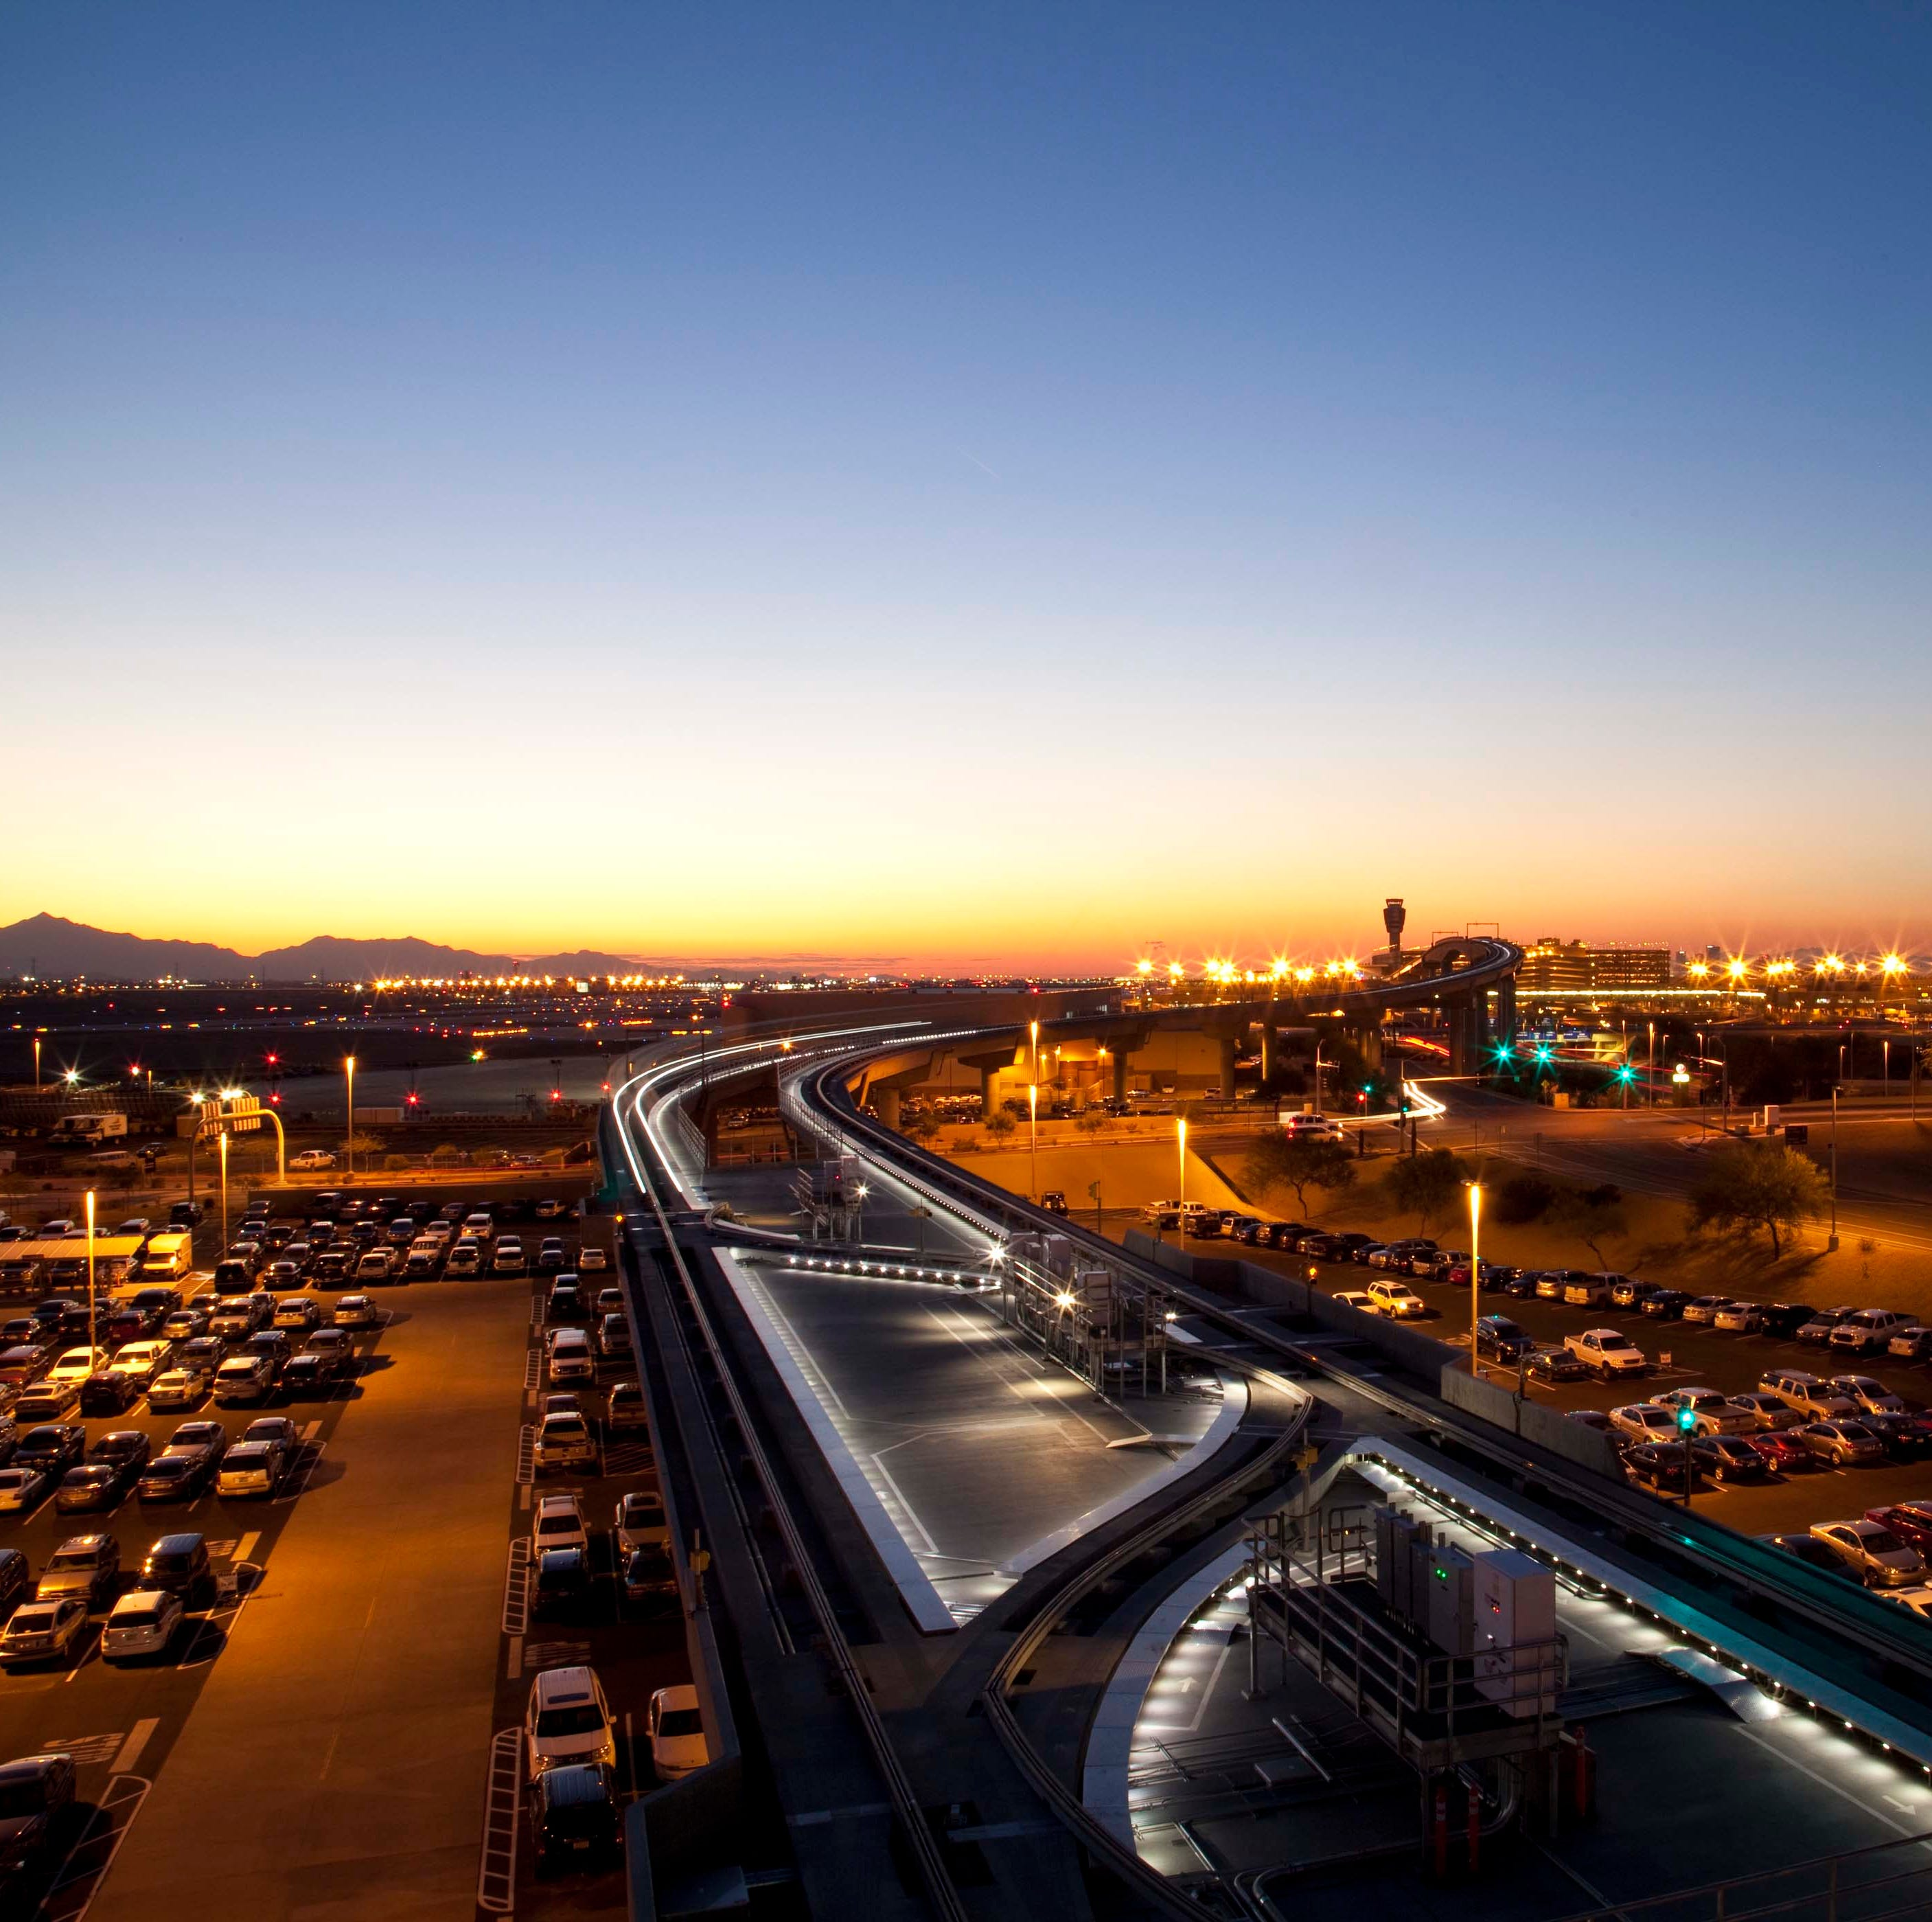 Worried about Sky Harbor flight path noise? Here's what you can do about it